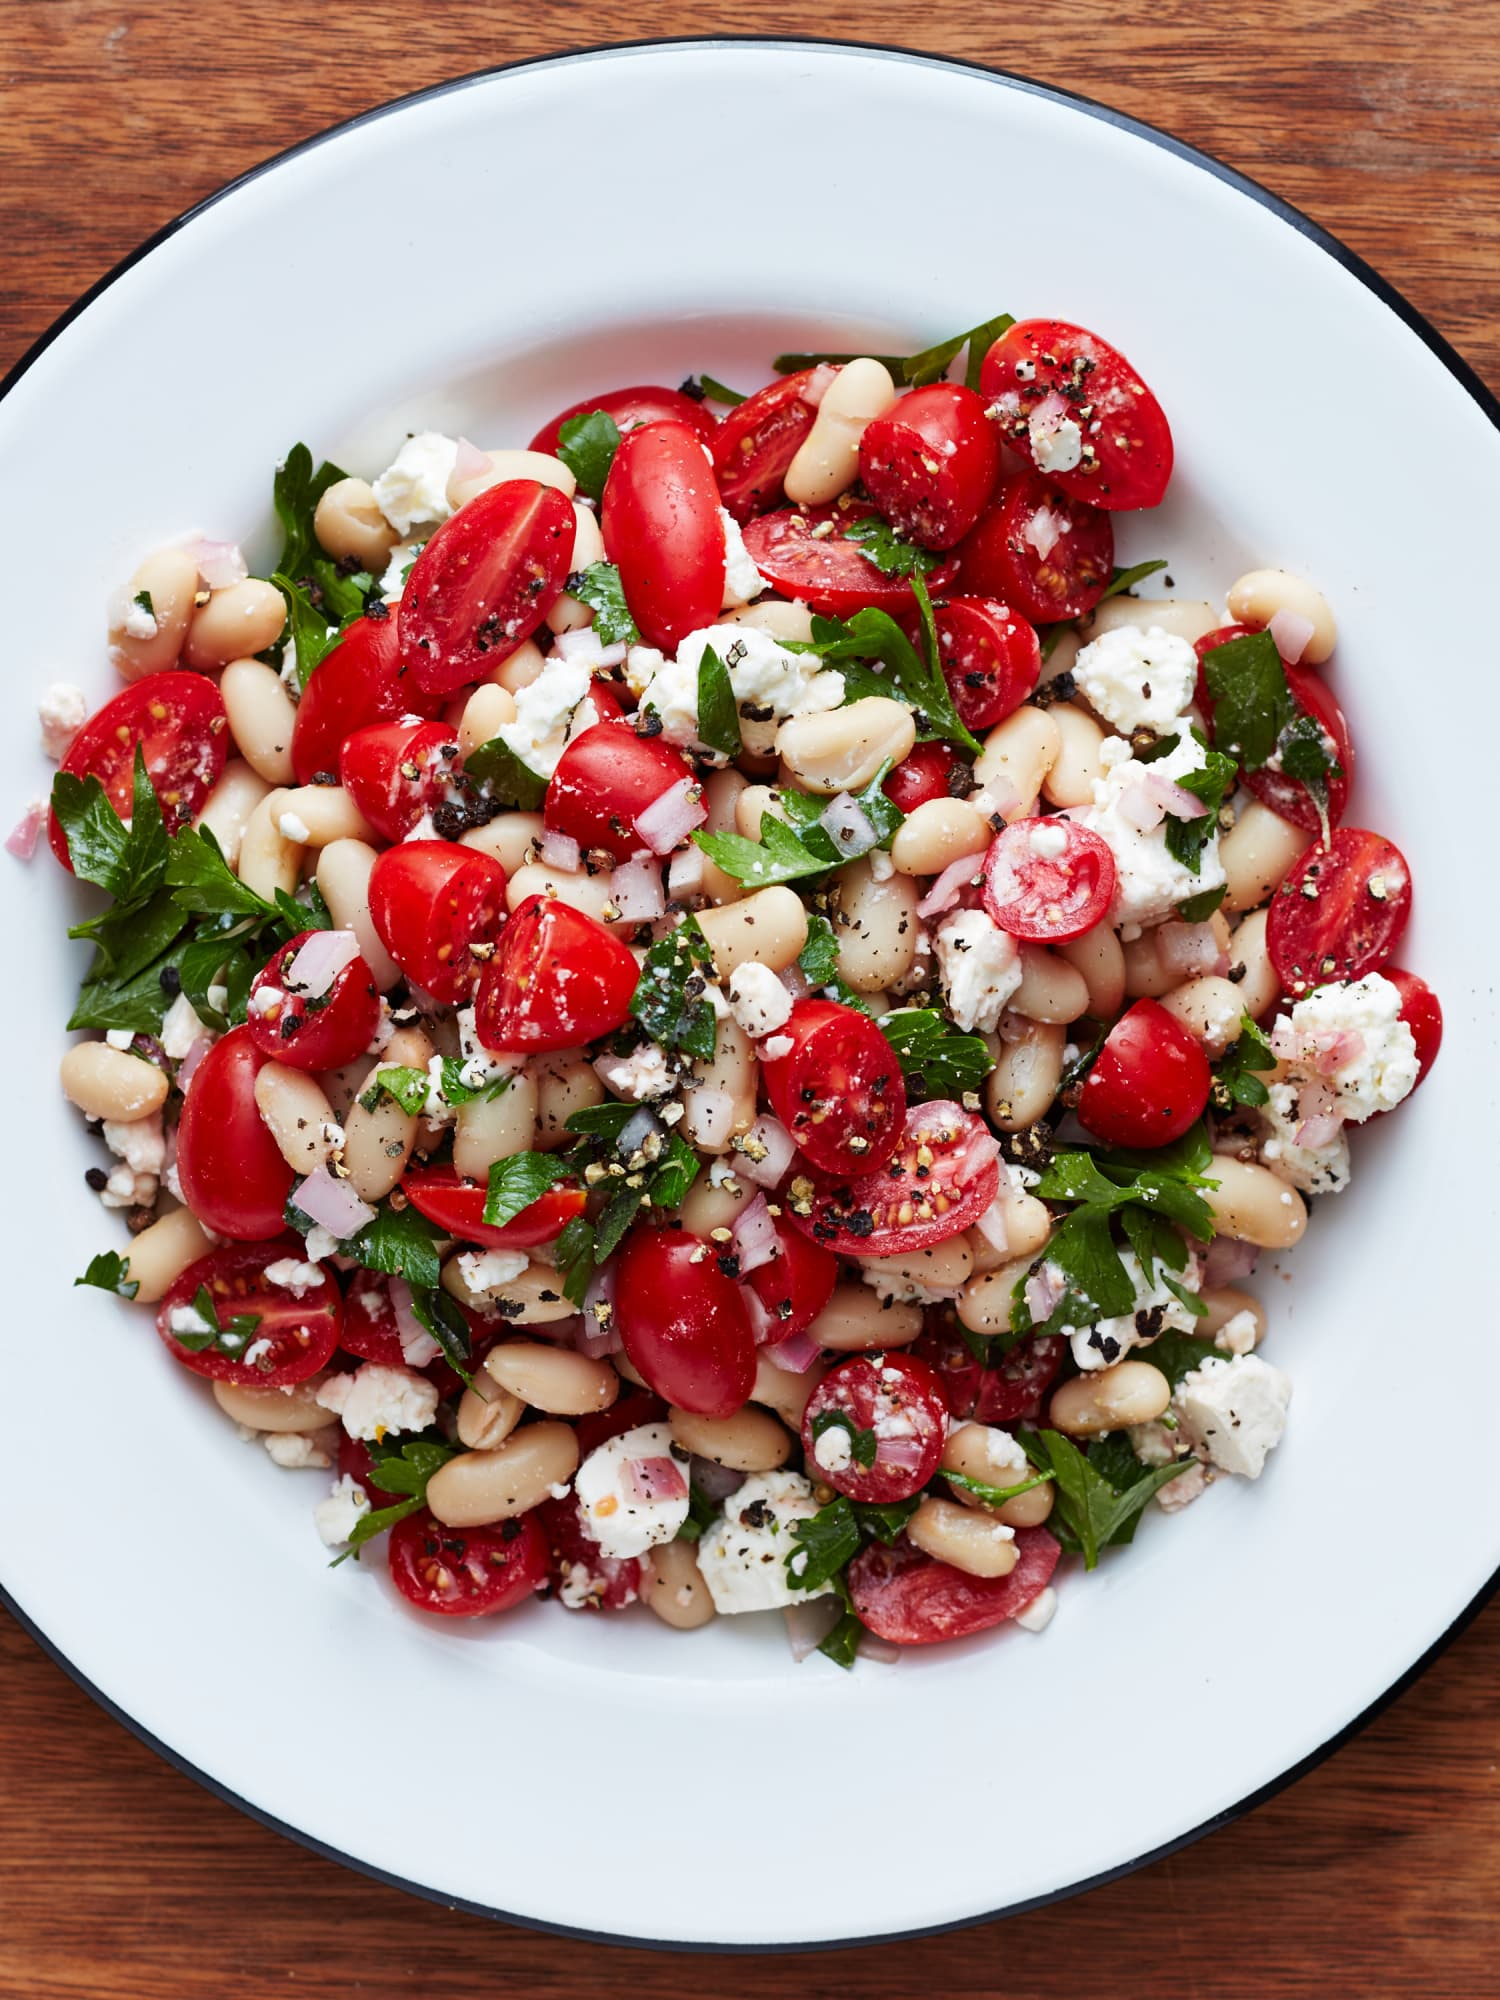 Recipe: Tomato and Feta White Bean Salad